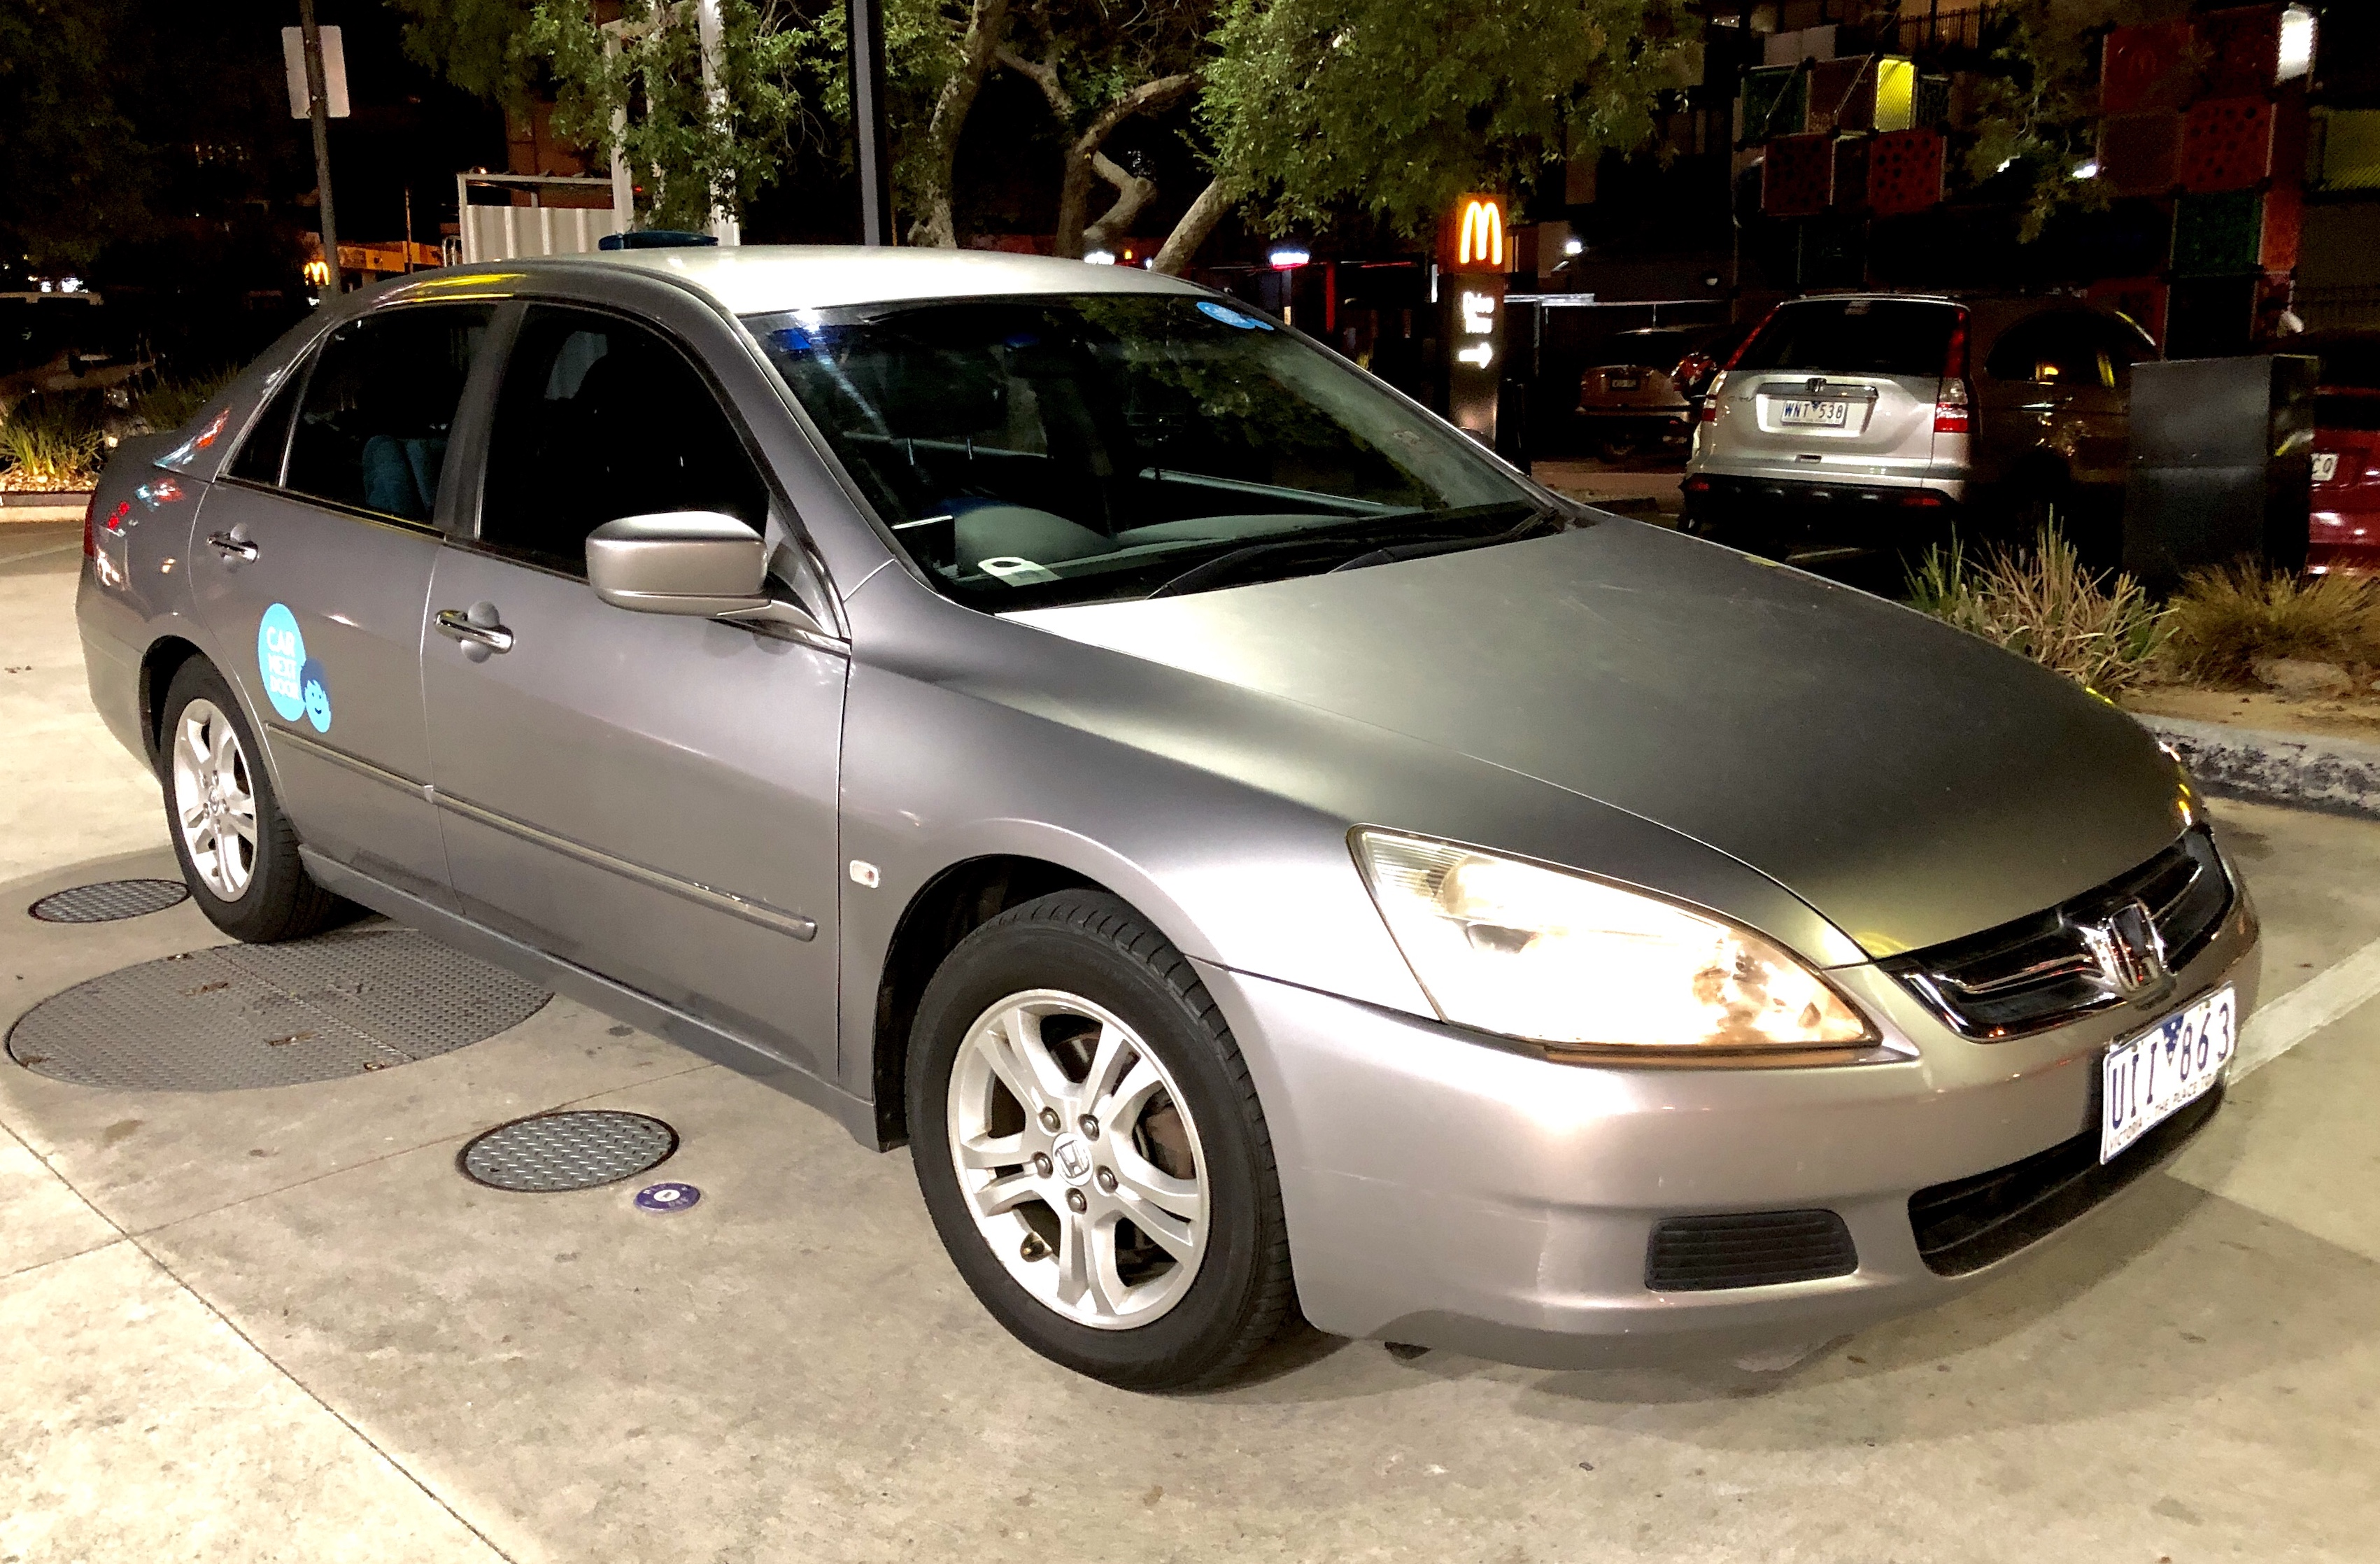 Picture of Zvi's 2006 Honda Accord